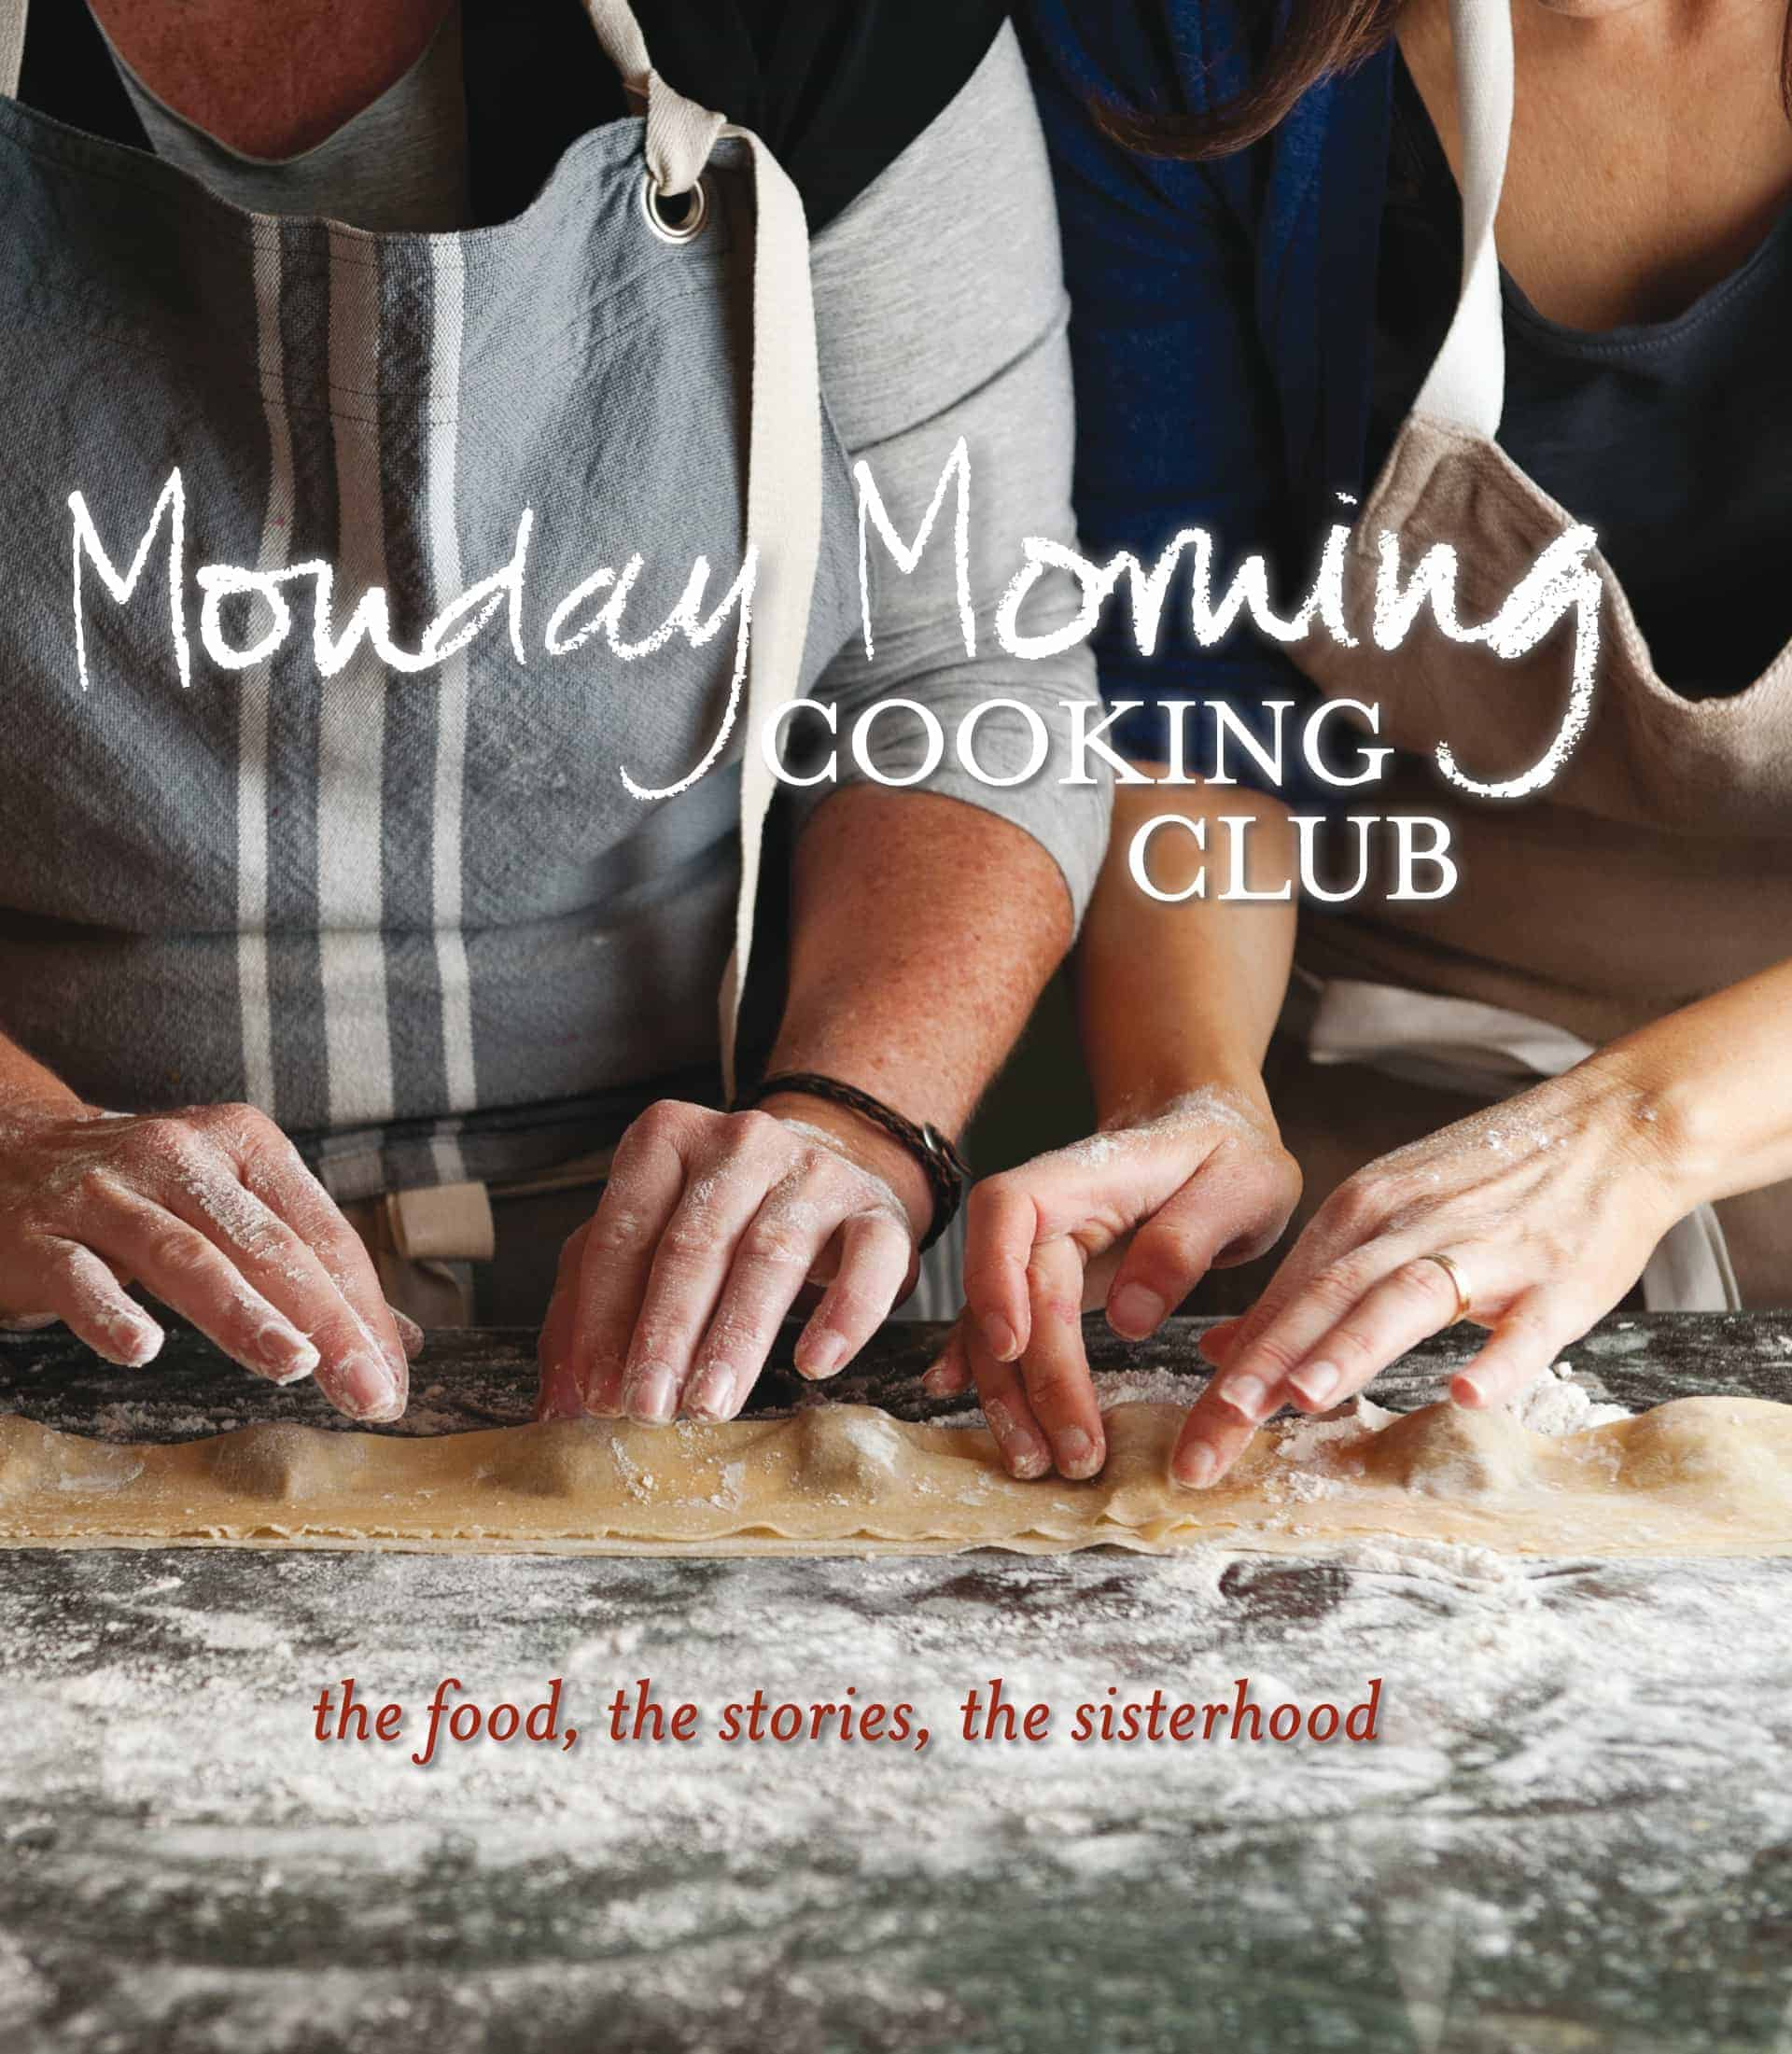 Monday Morning Cooking Club – The Food, The Stories, The Sisterhood